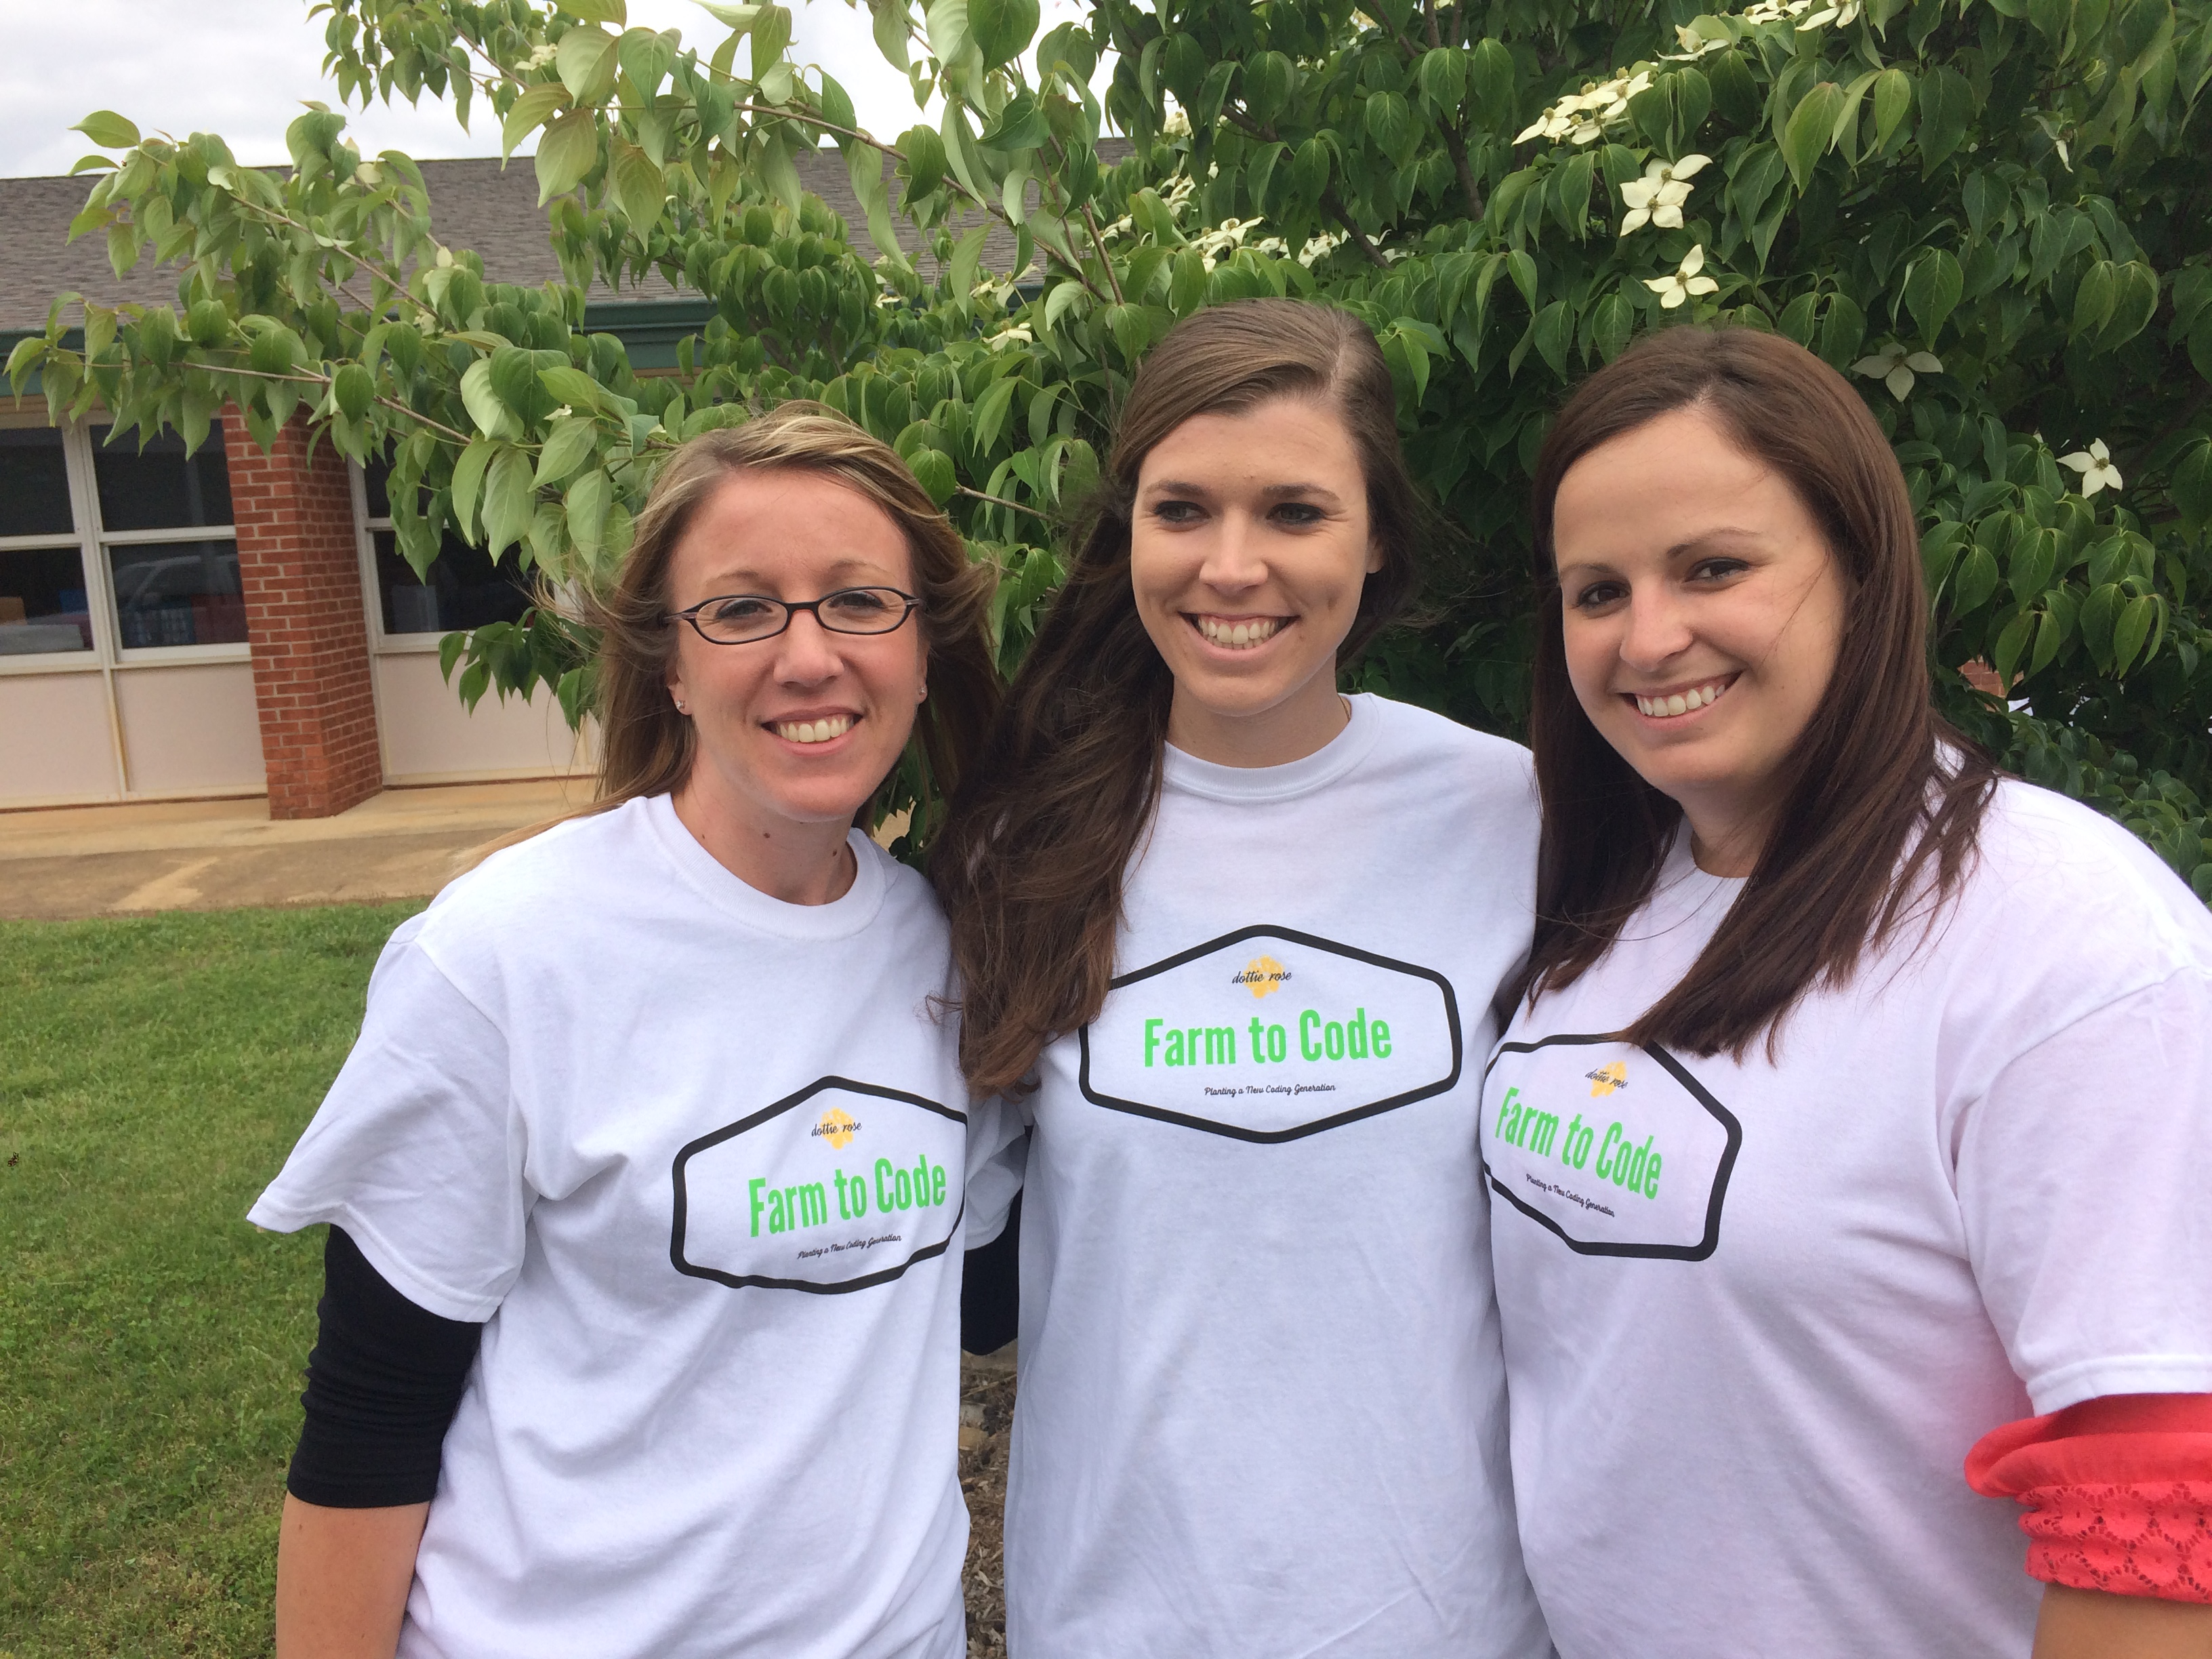 TEACHERS FROM SHERILL FORD